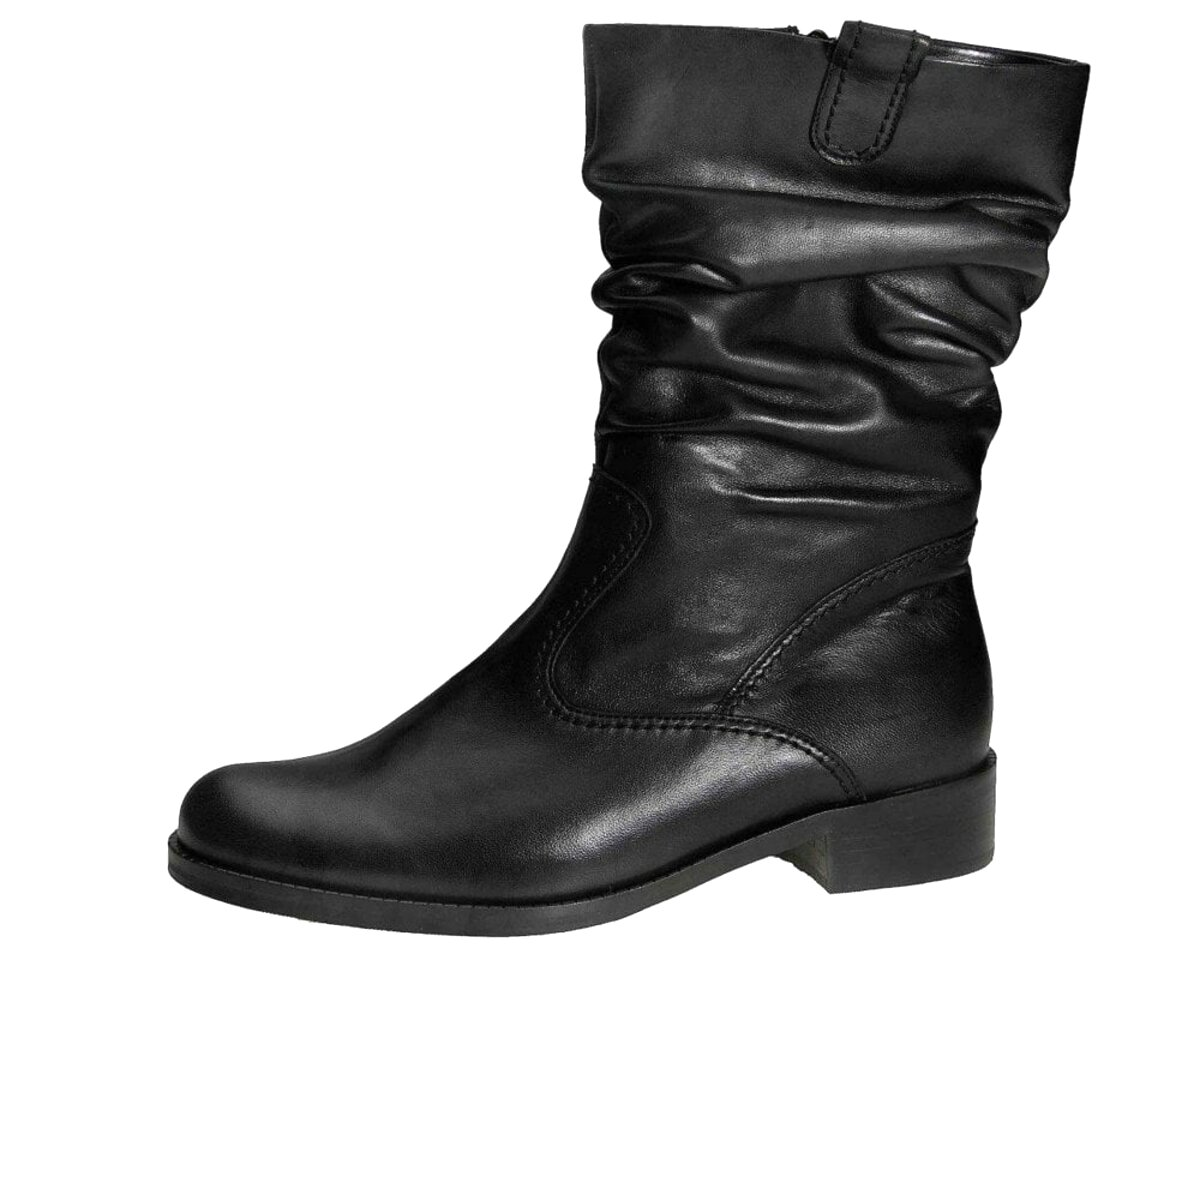 wide fit calf boots for sale